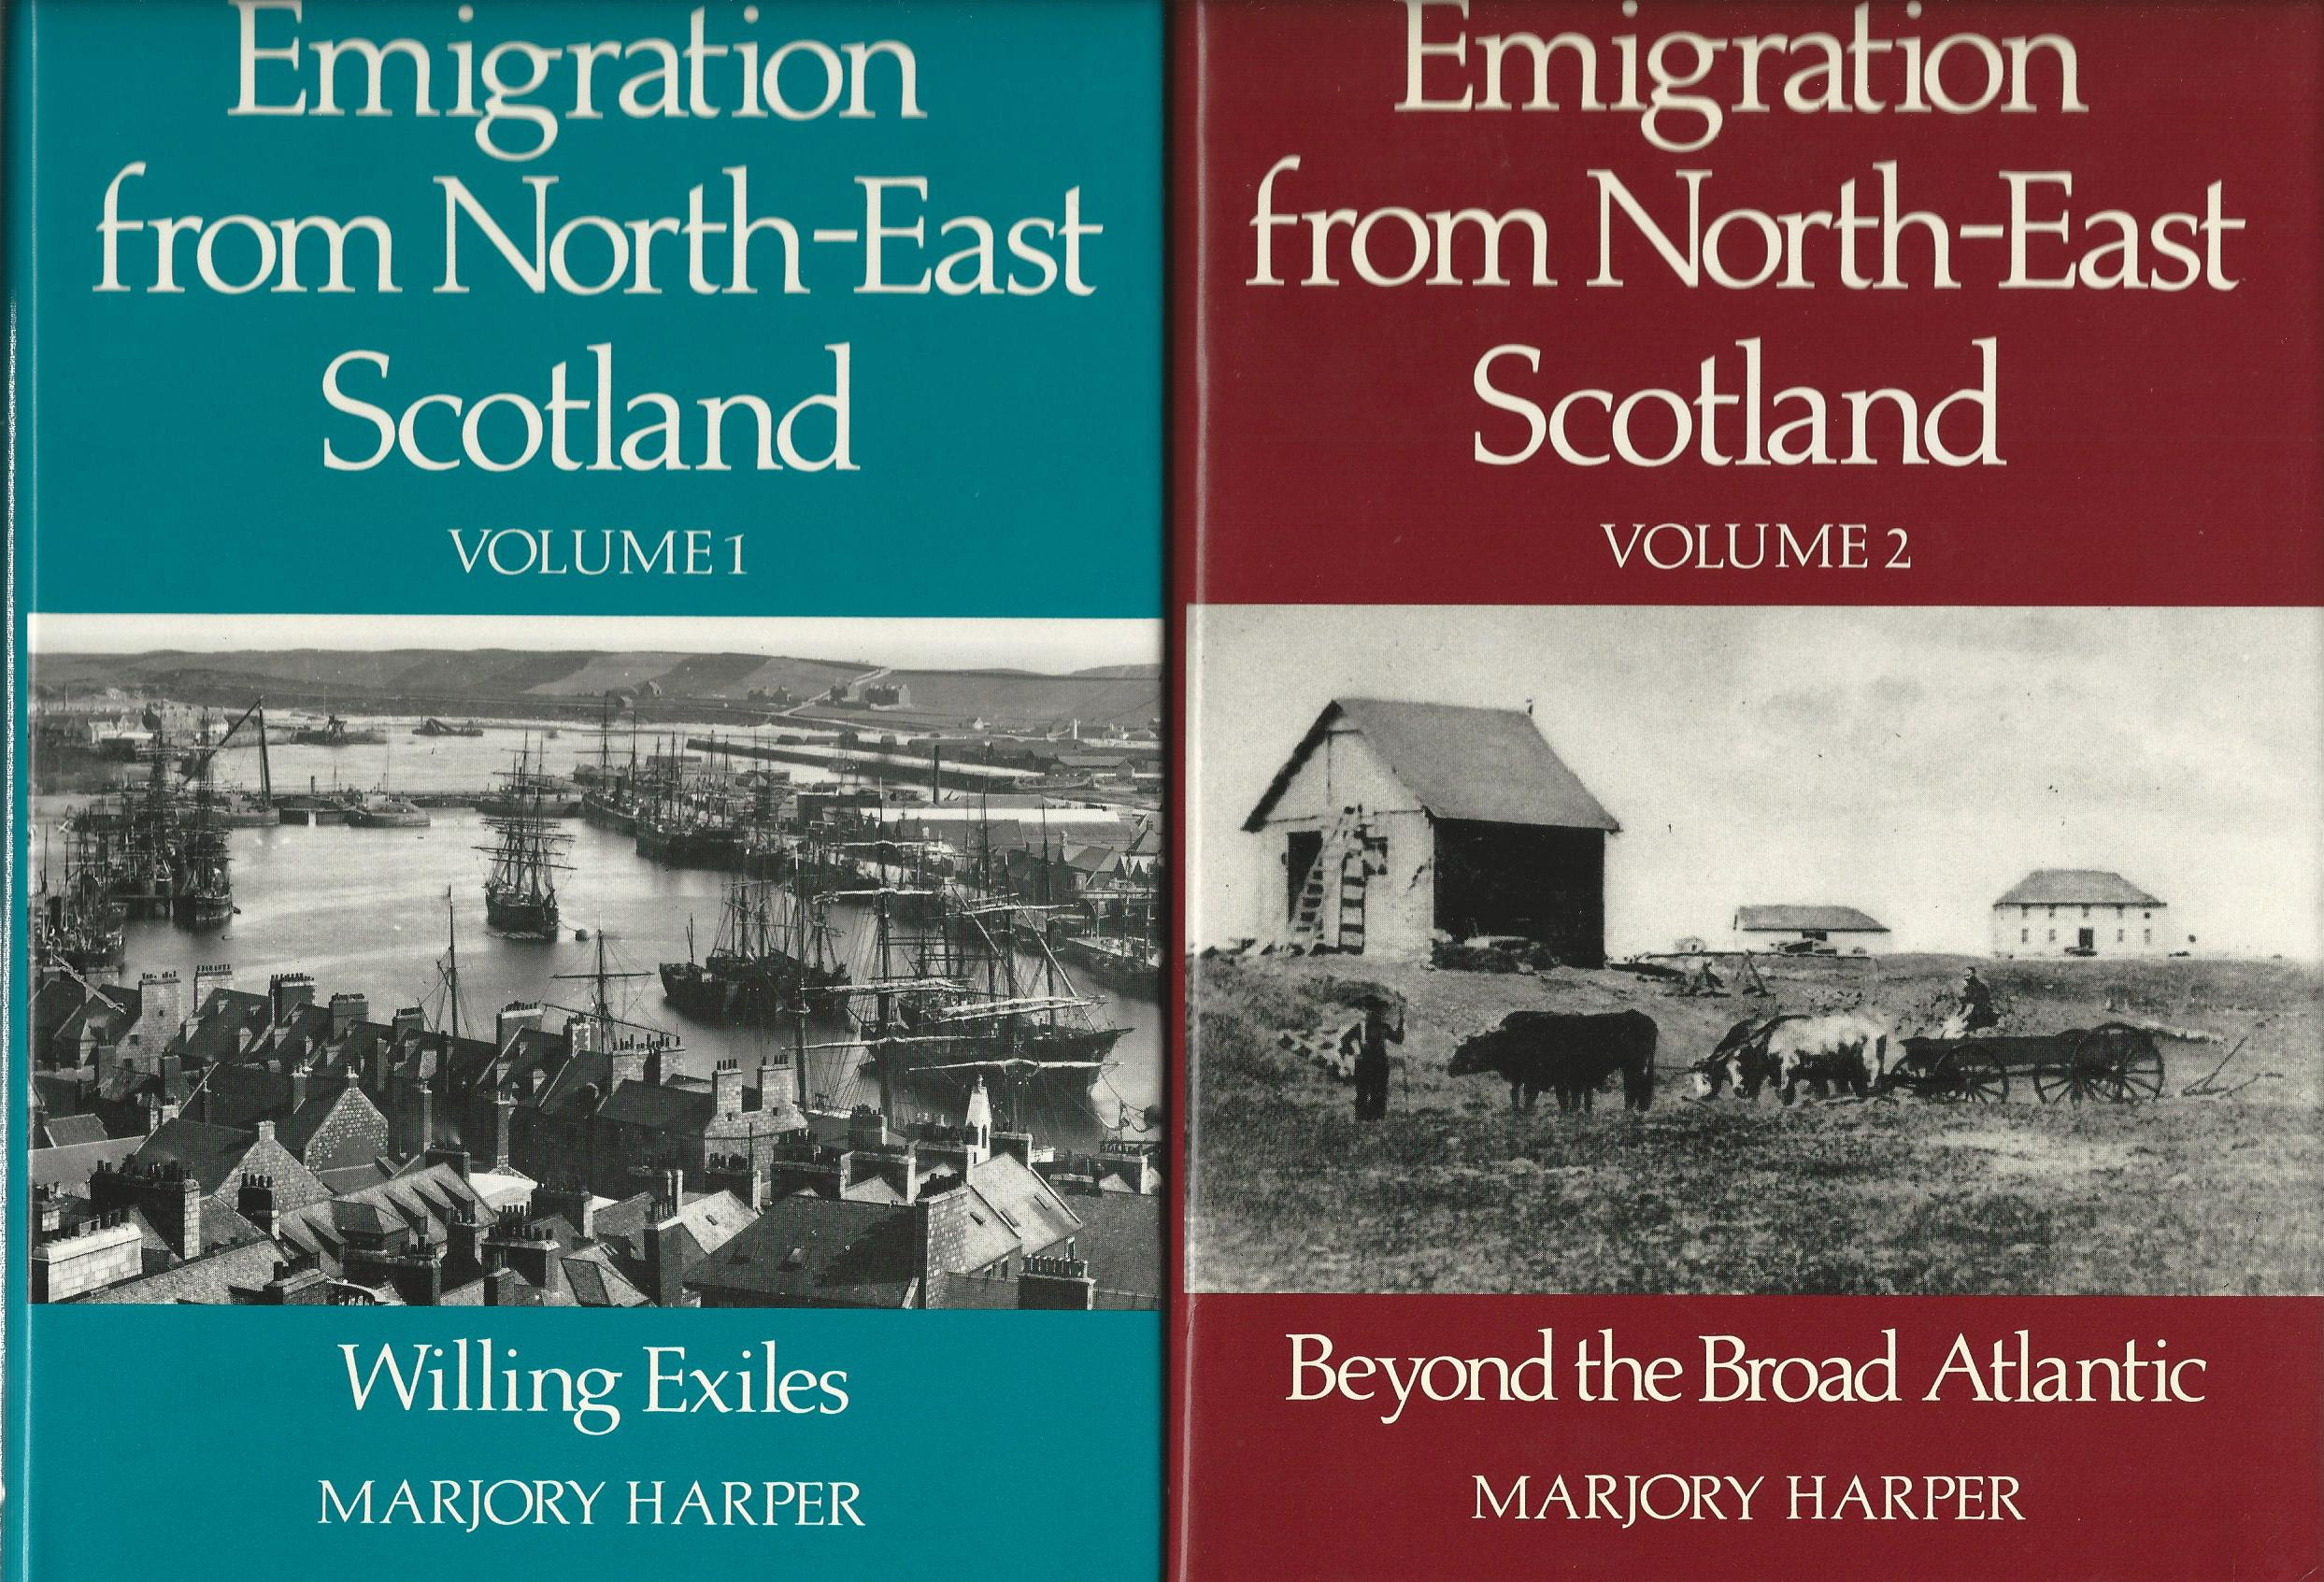 Image for Emigration from Northeast Scotland: 2 Volumes; Willing Exiles & Beyond the Broad Atlantic.